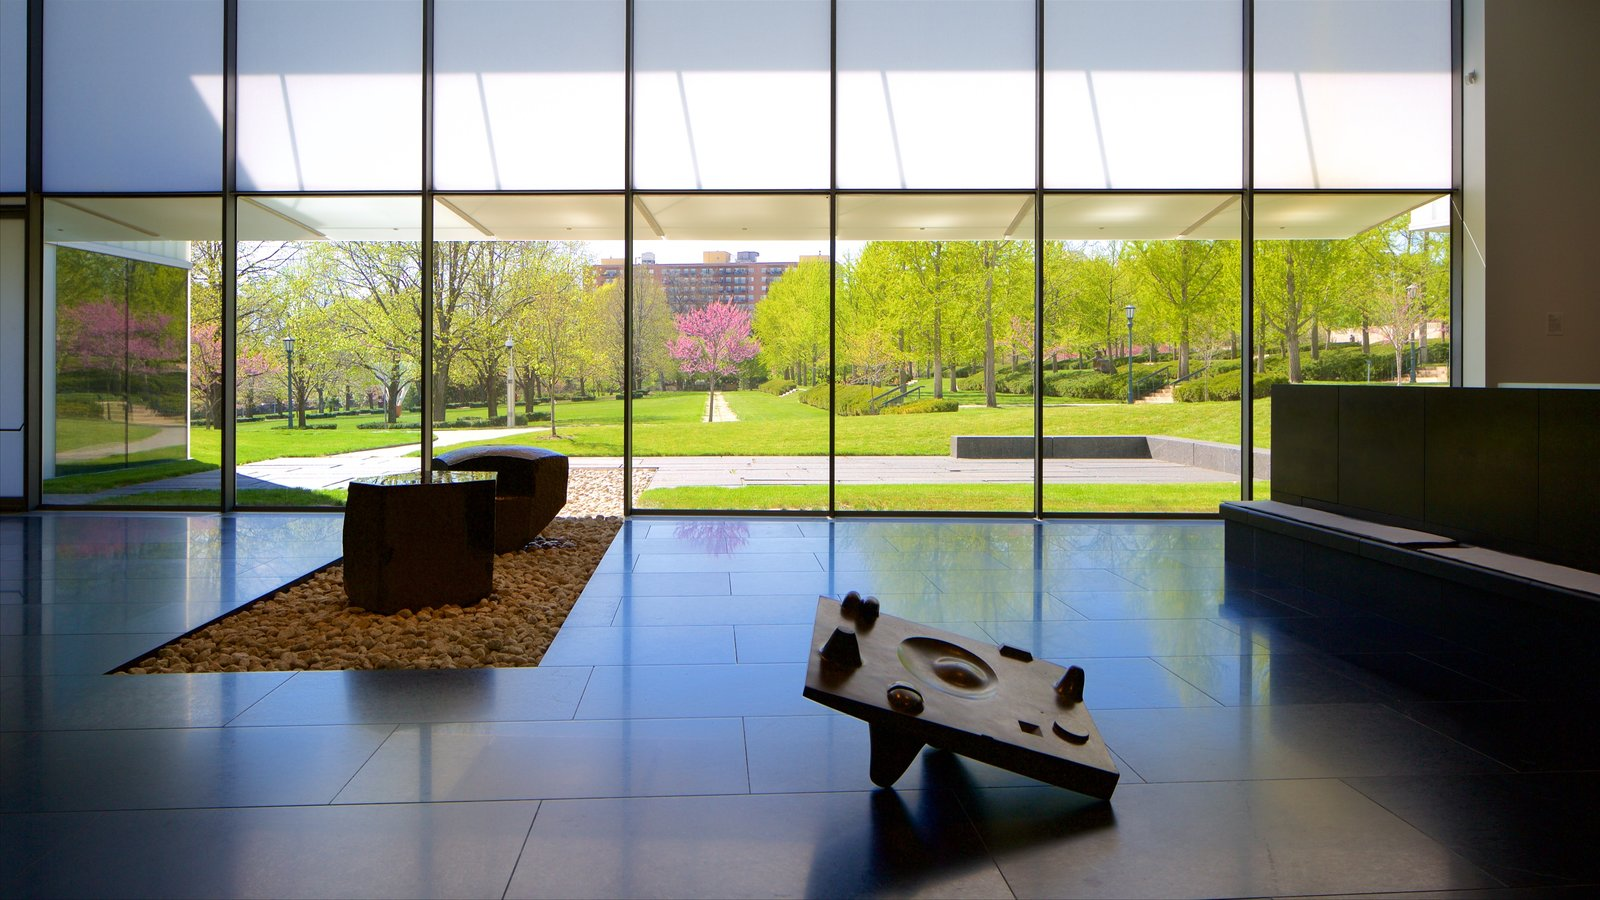 Nelson Atkins Museum Of Art Which Includes Modern Architecture And Interior Views